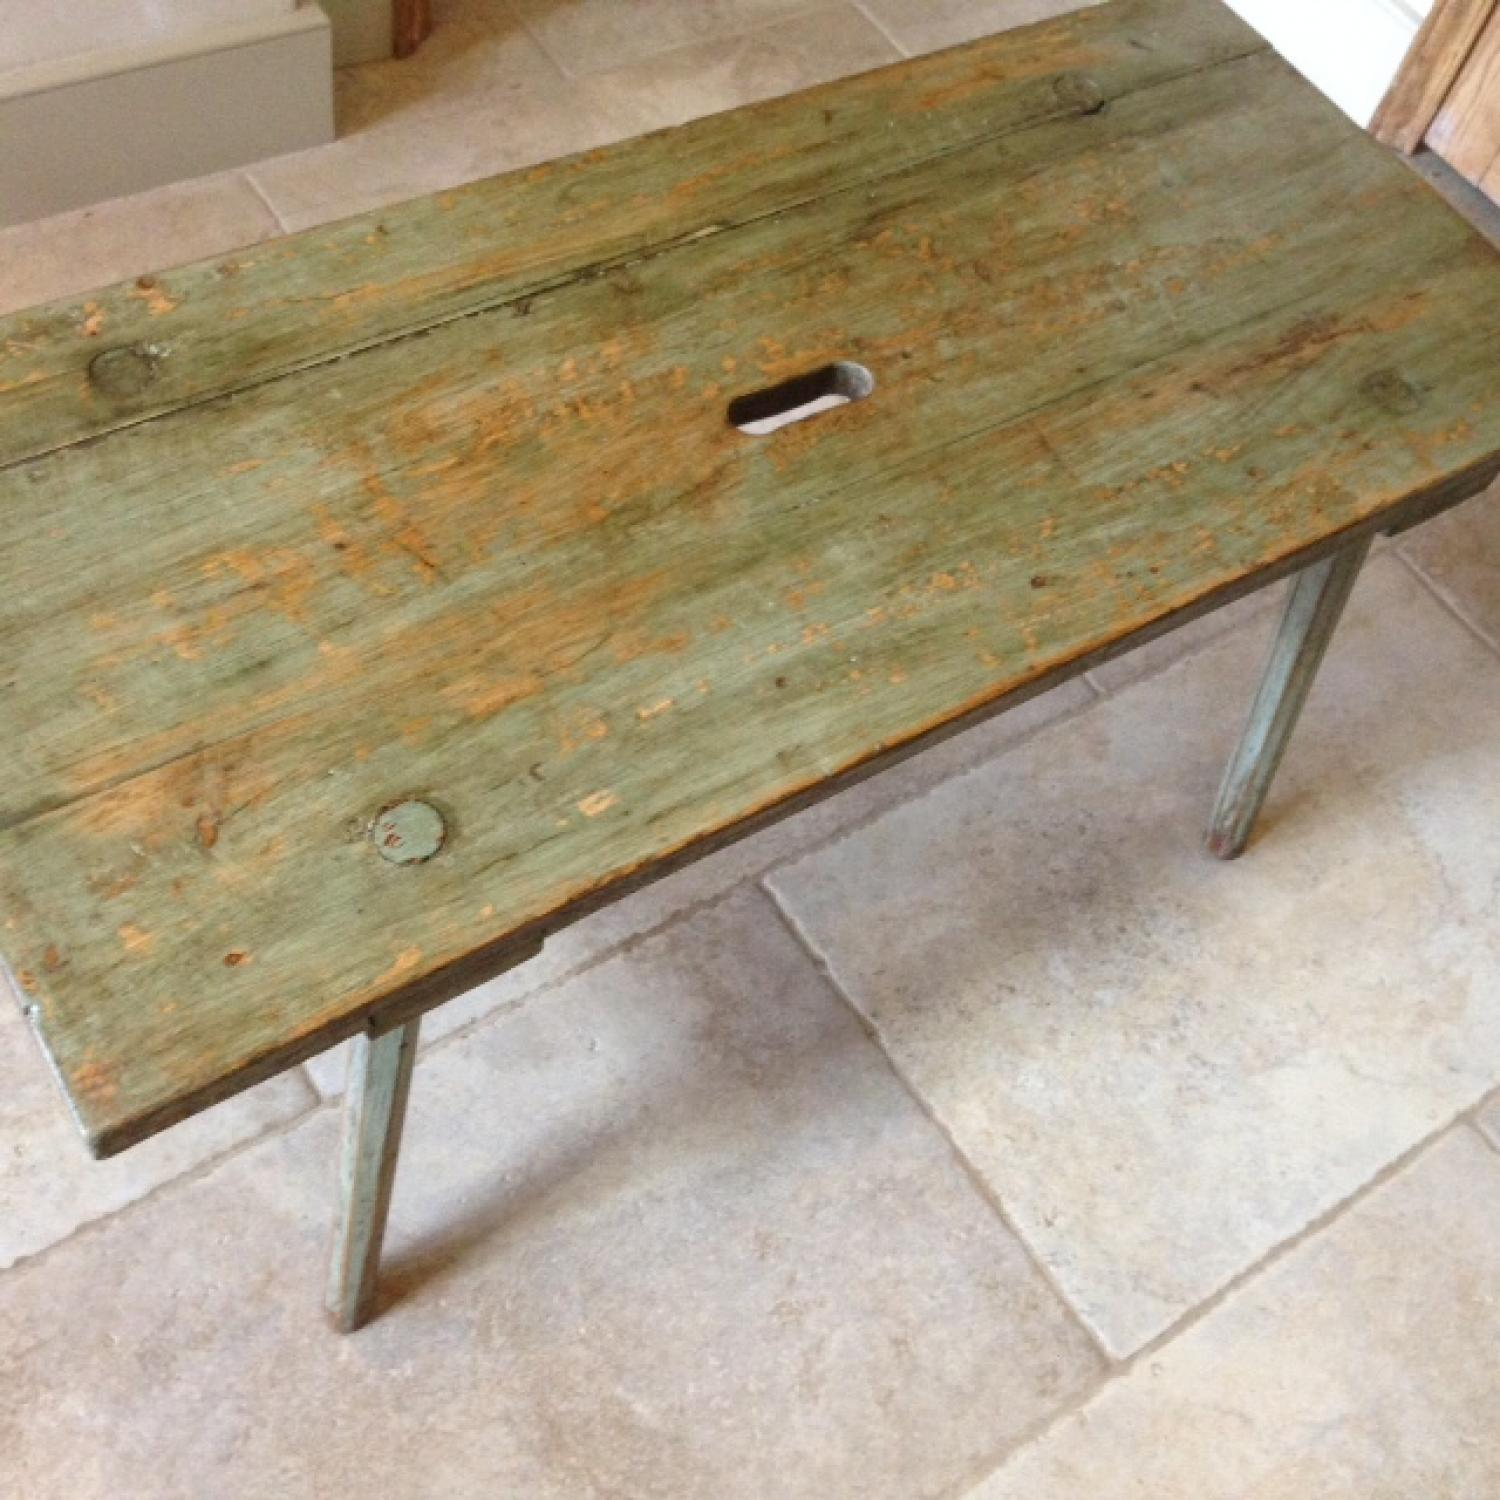 Antique Country Coffee Table Bench in FURNITURE & BOXES